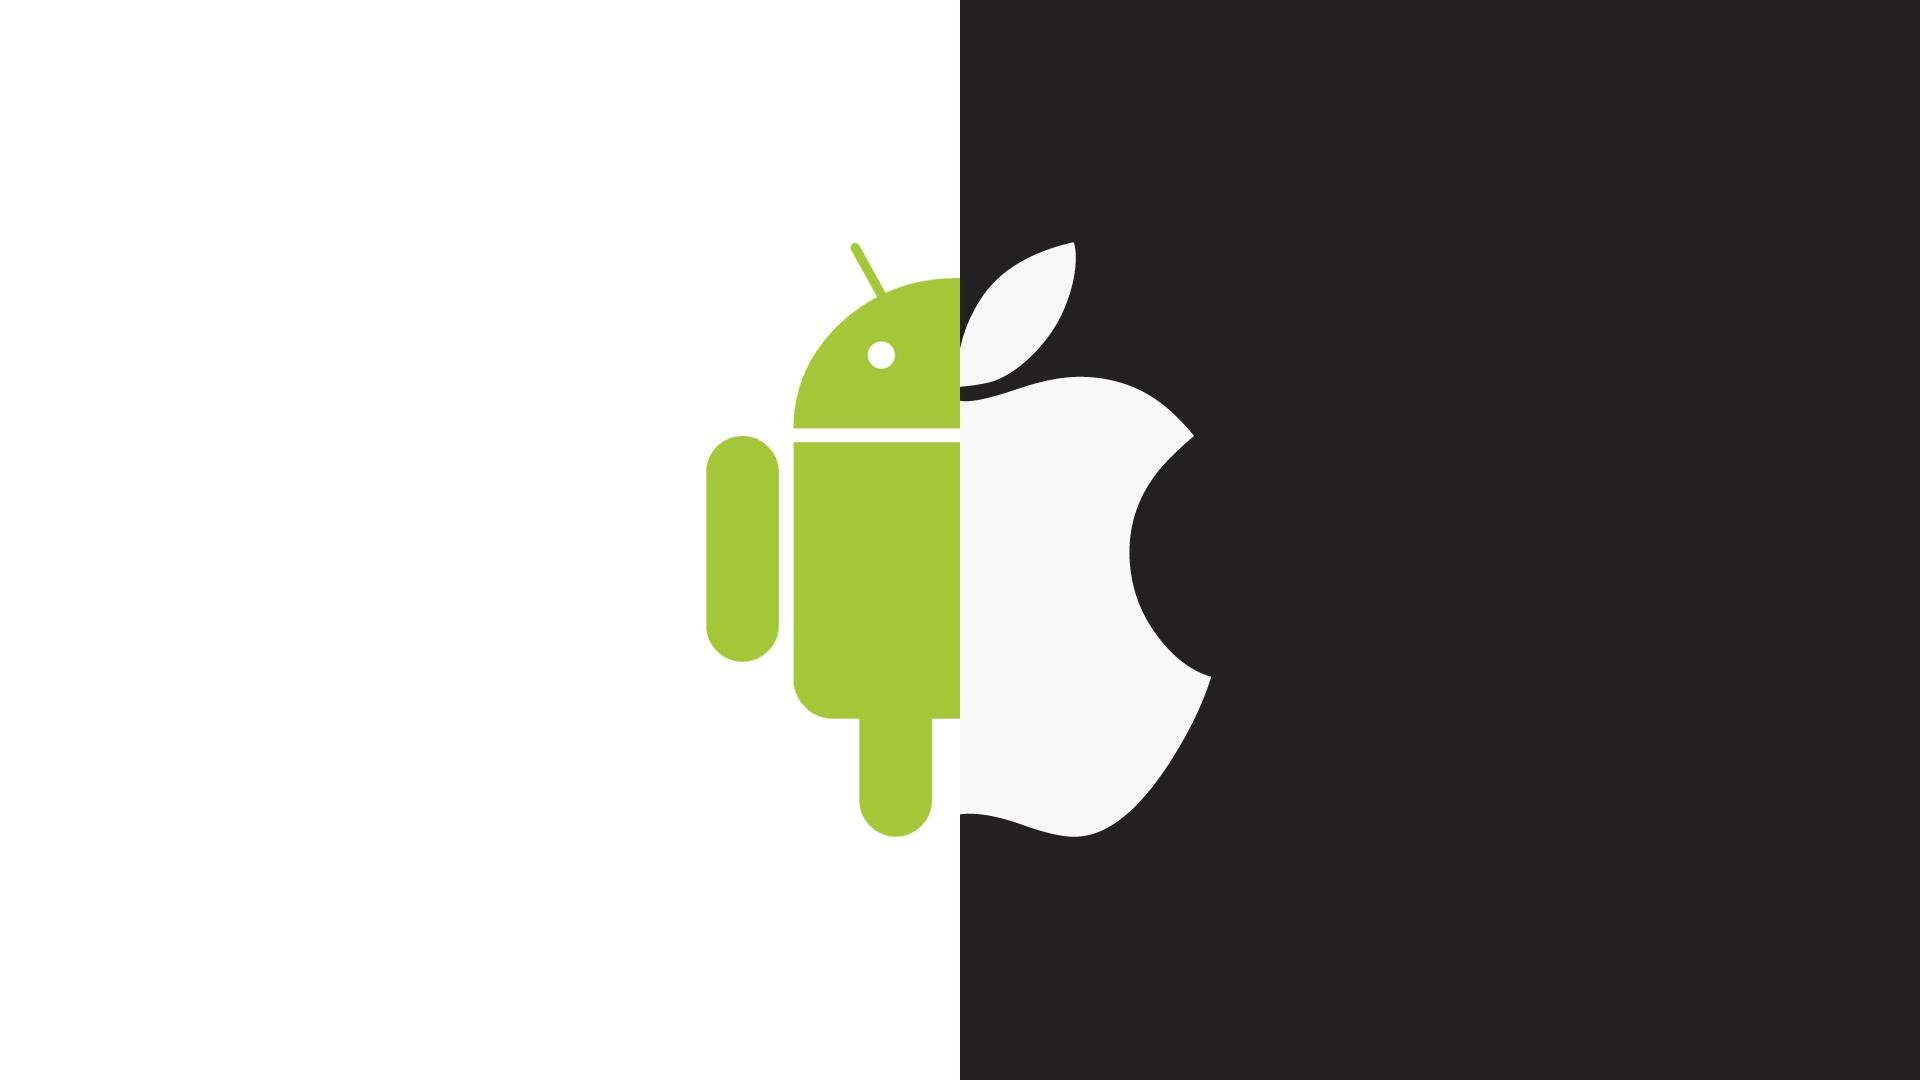 Apple vs android clipart clip free download World Versus - Android vs Apple iOS clip free download